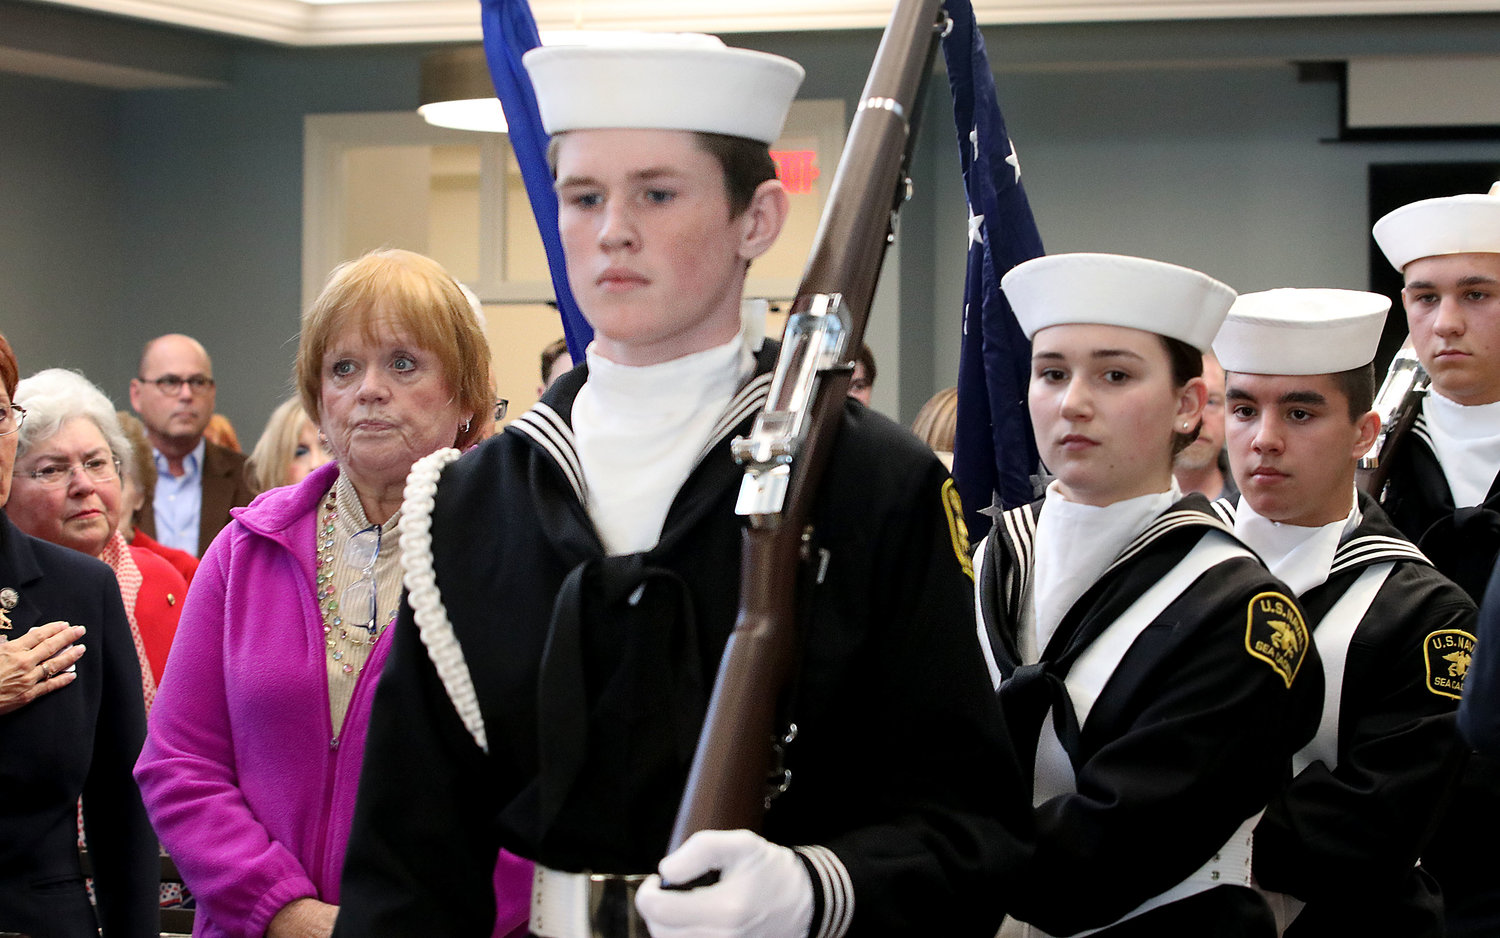 The US Naval Sea Cadets Corps, Falcon Division post the colors for the service.